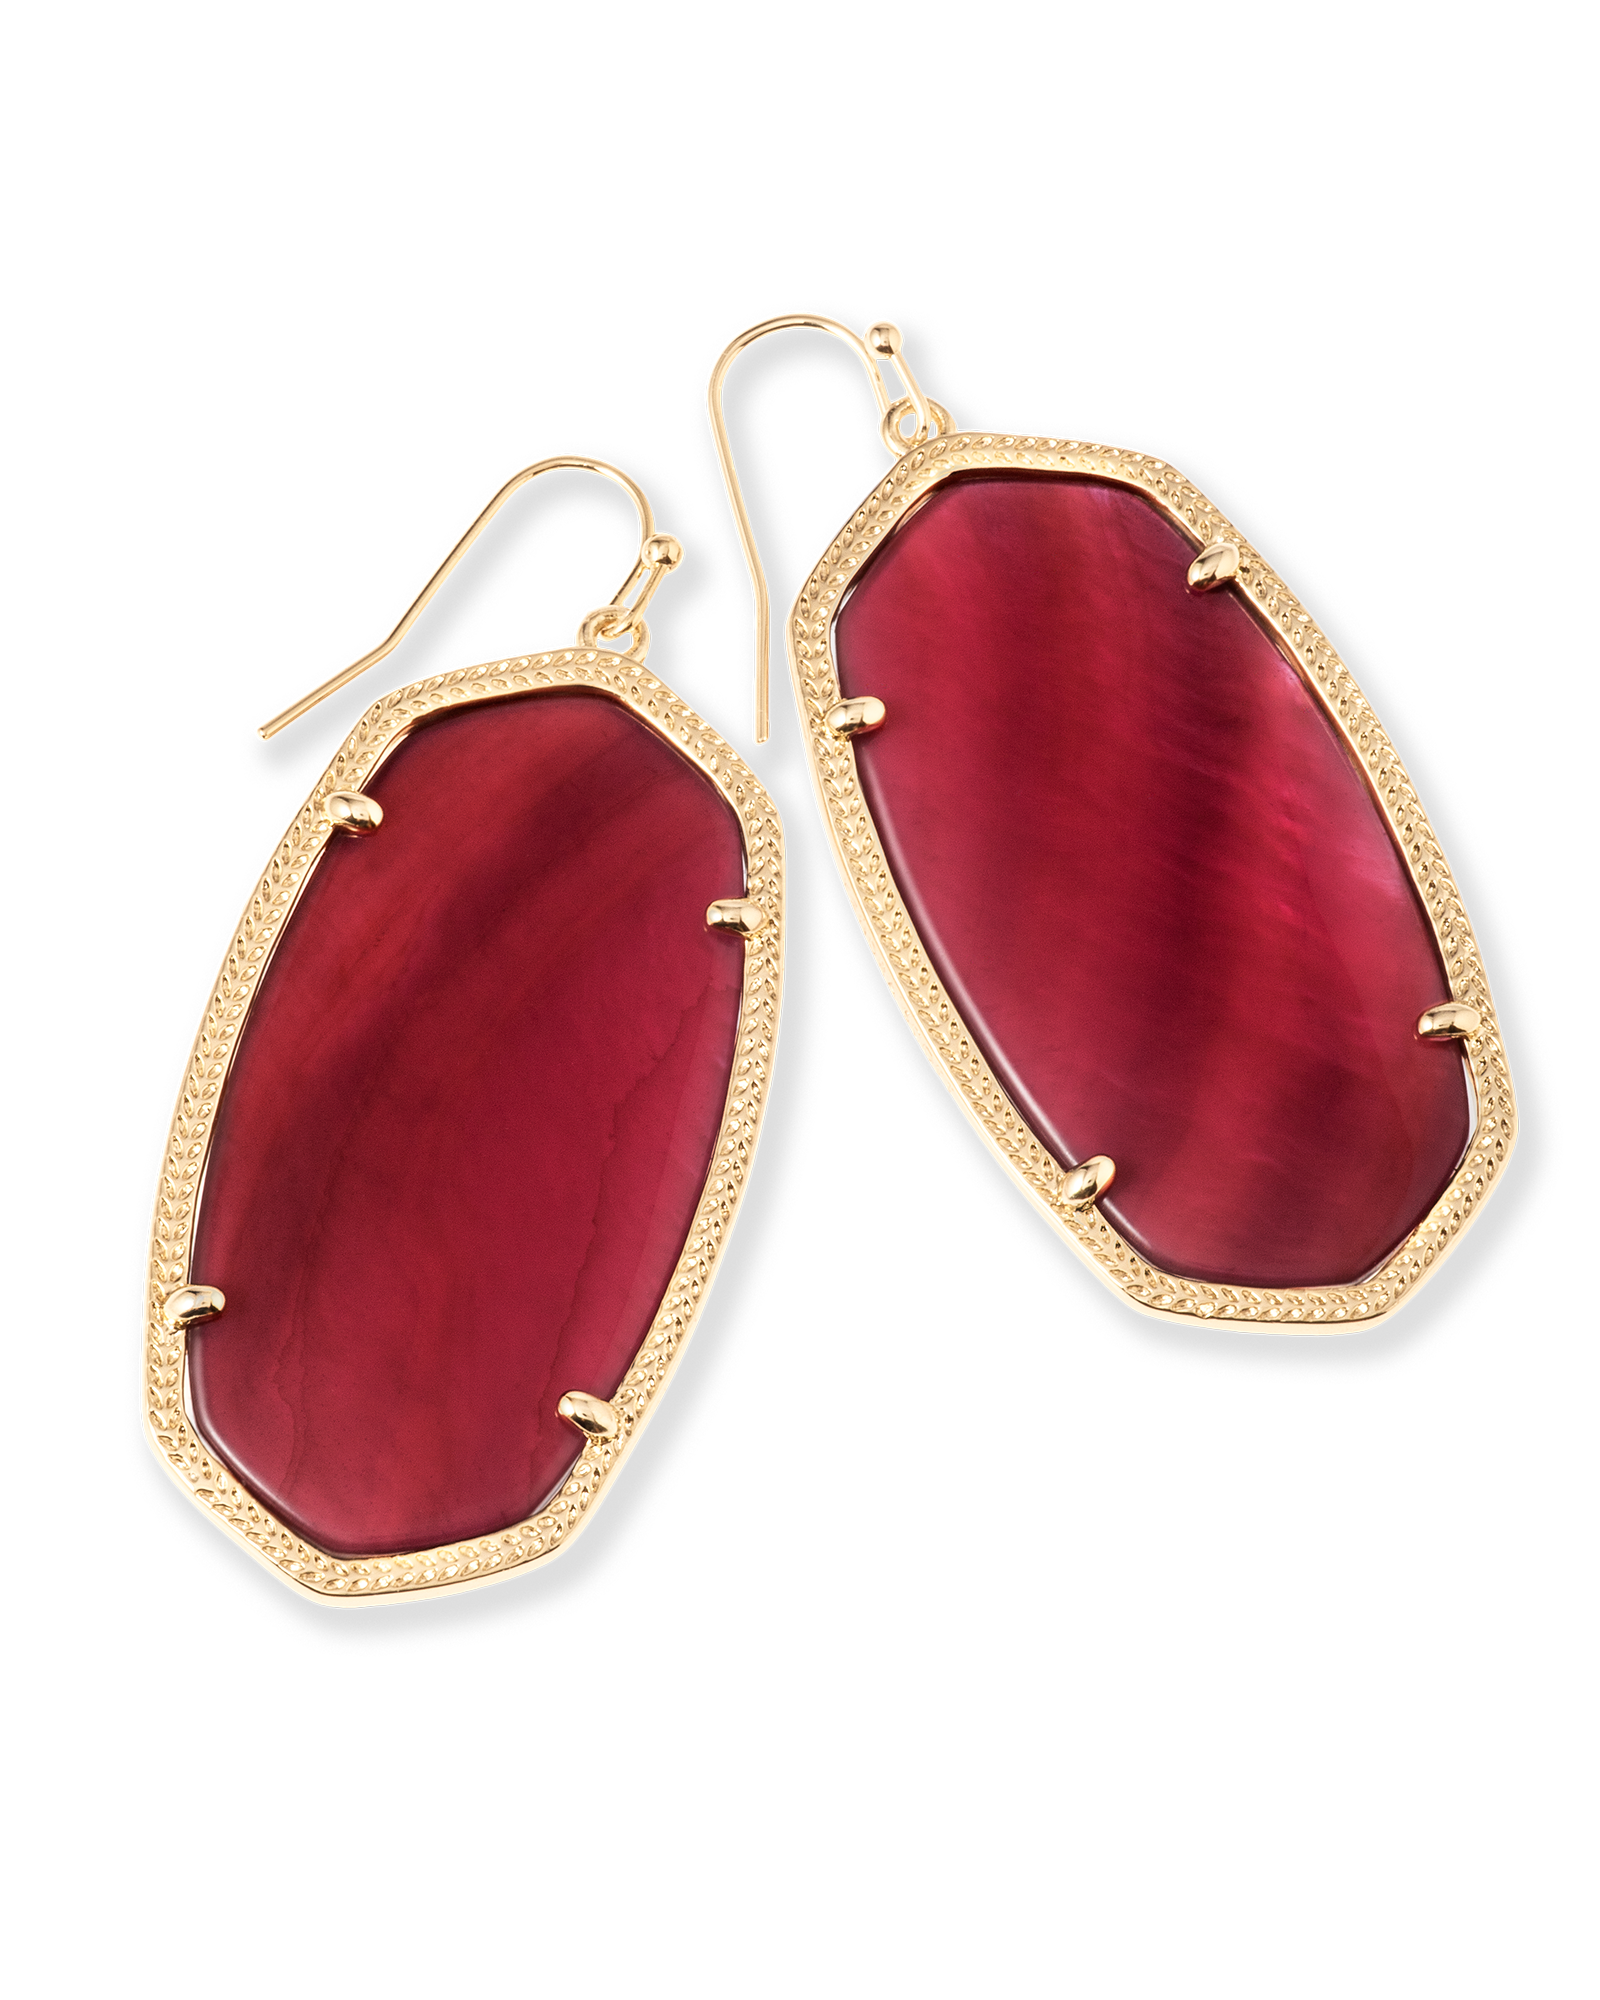 Burgundy danielle 2016 wish list pinterest gold kendra scott danielle earrings in burgundy illusion gold plated ltd edition arubaitofo Choice Image